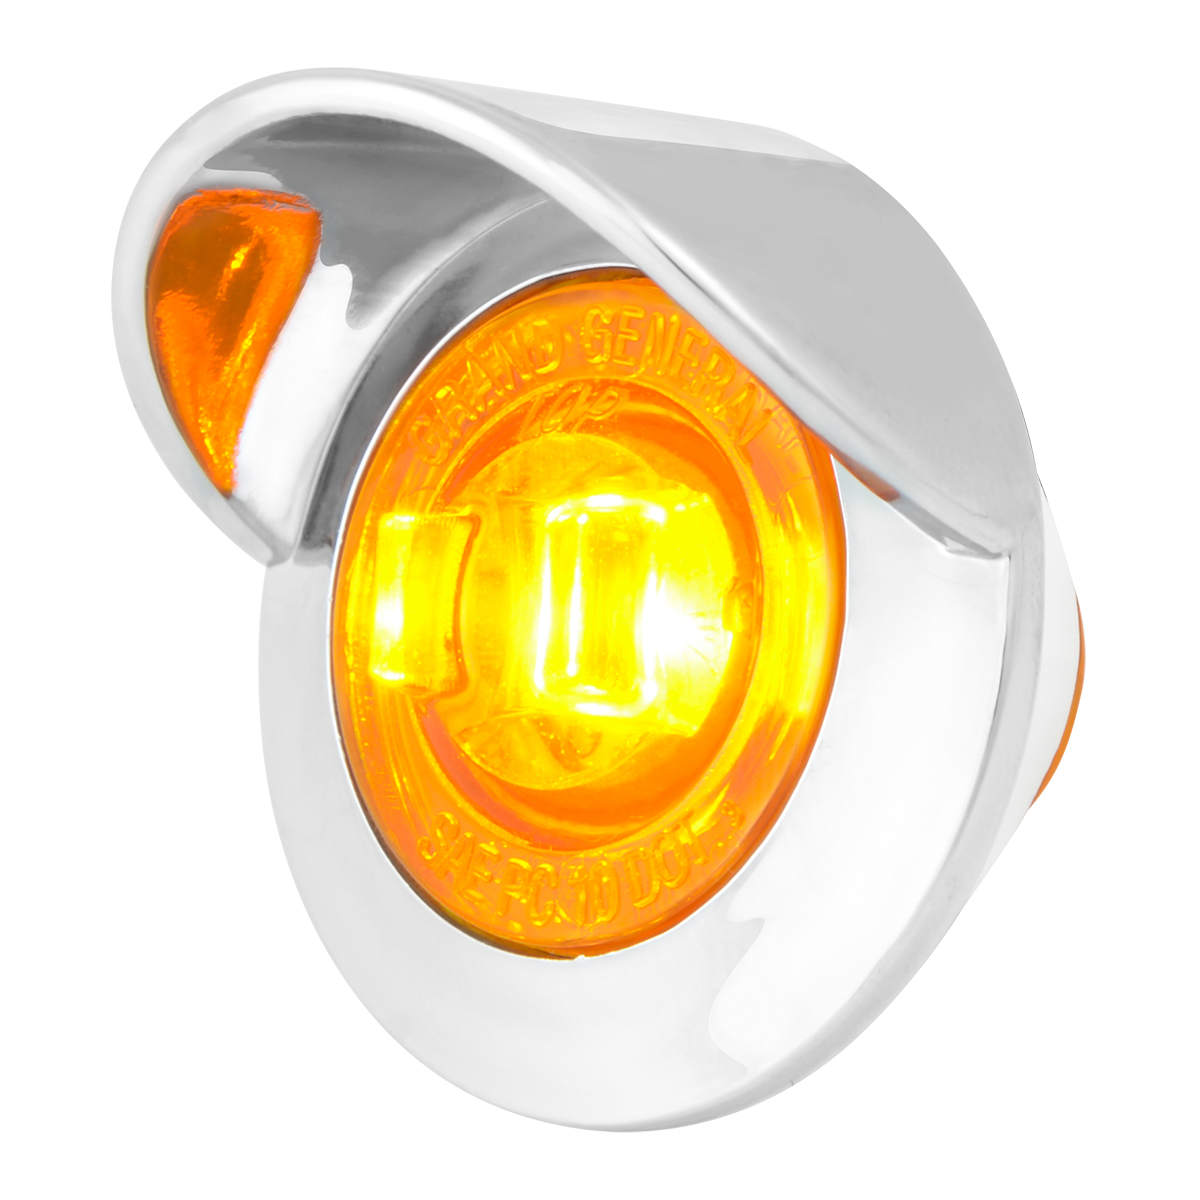 "75260 1"" Dual Function Mini Push/Screw-in Wide Angle LED Light w/ Chrome Bezel & Visor"